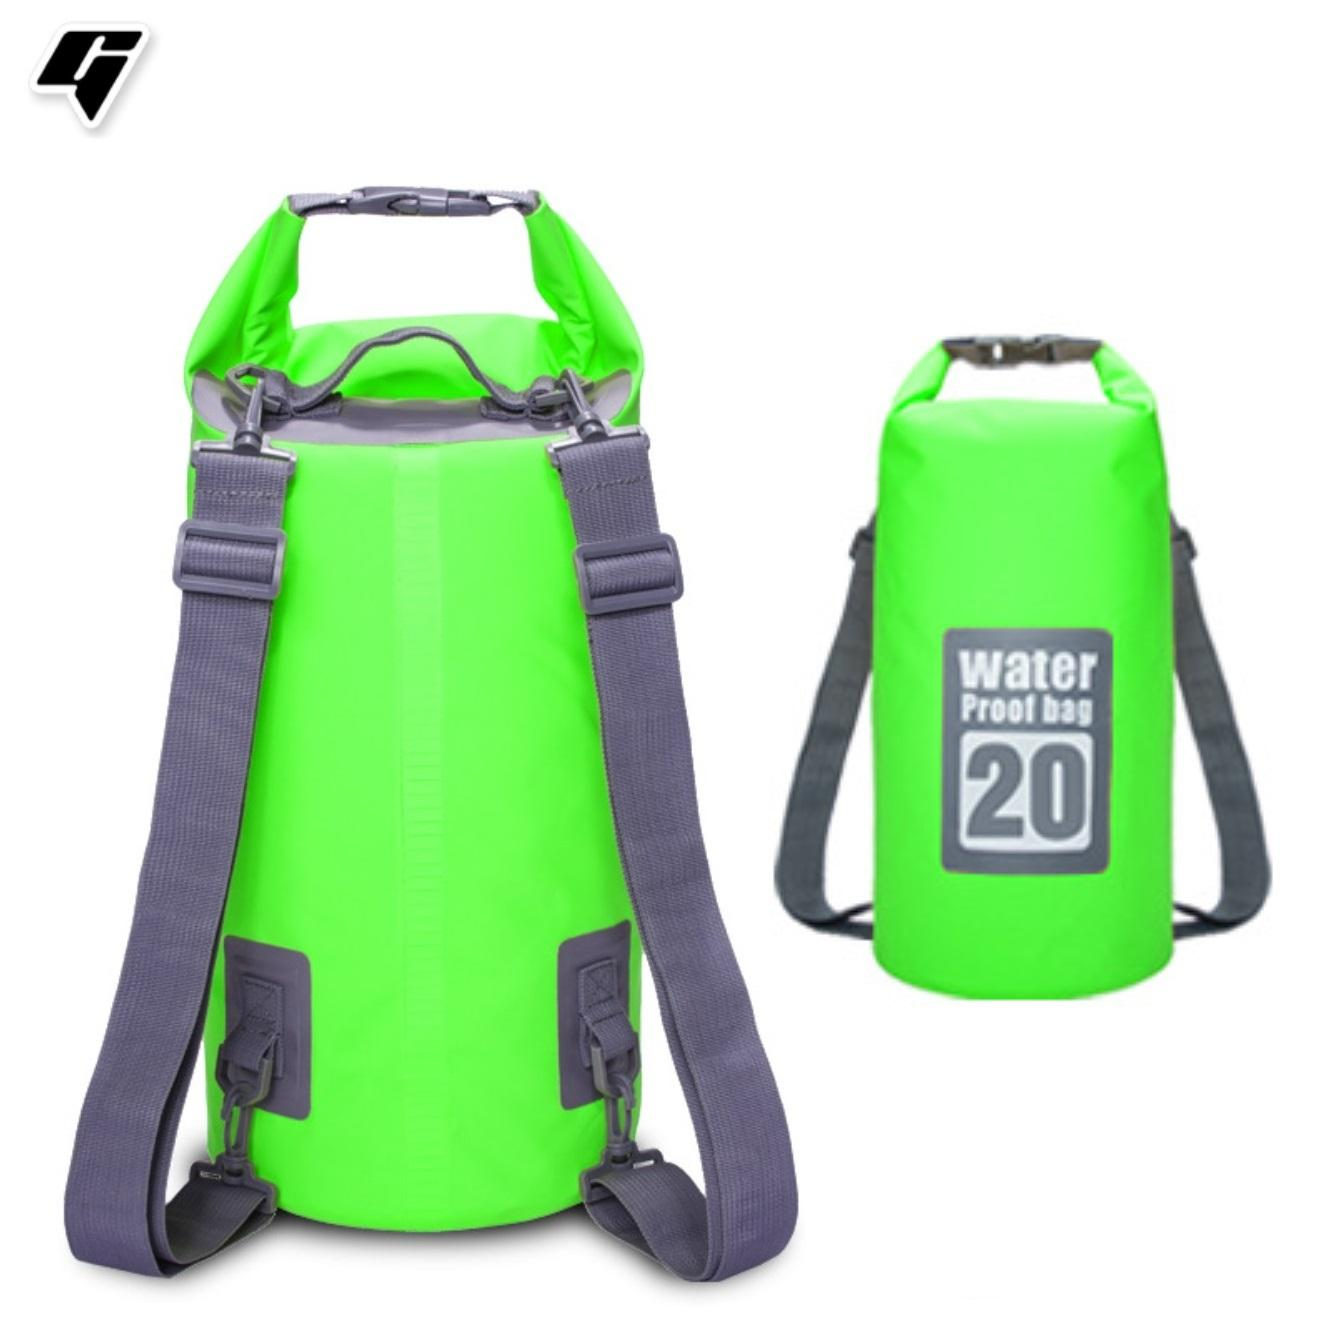 20L Water Proof Dry Bag image on snachetto.com